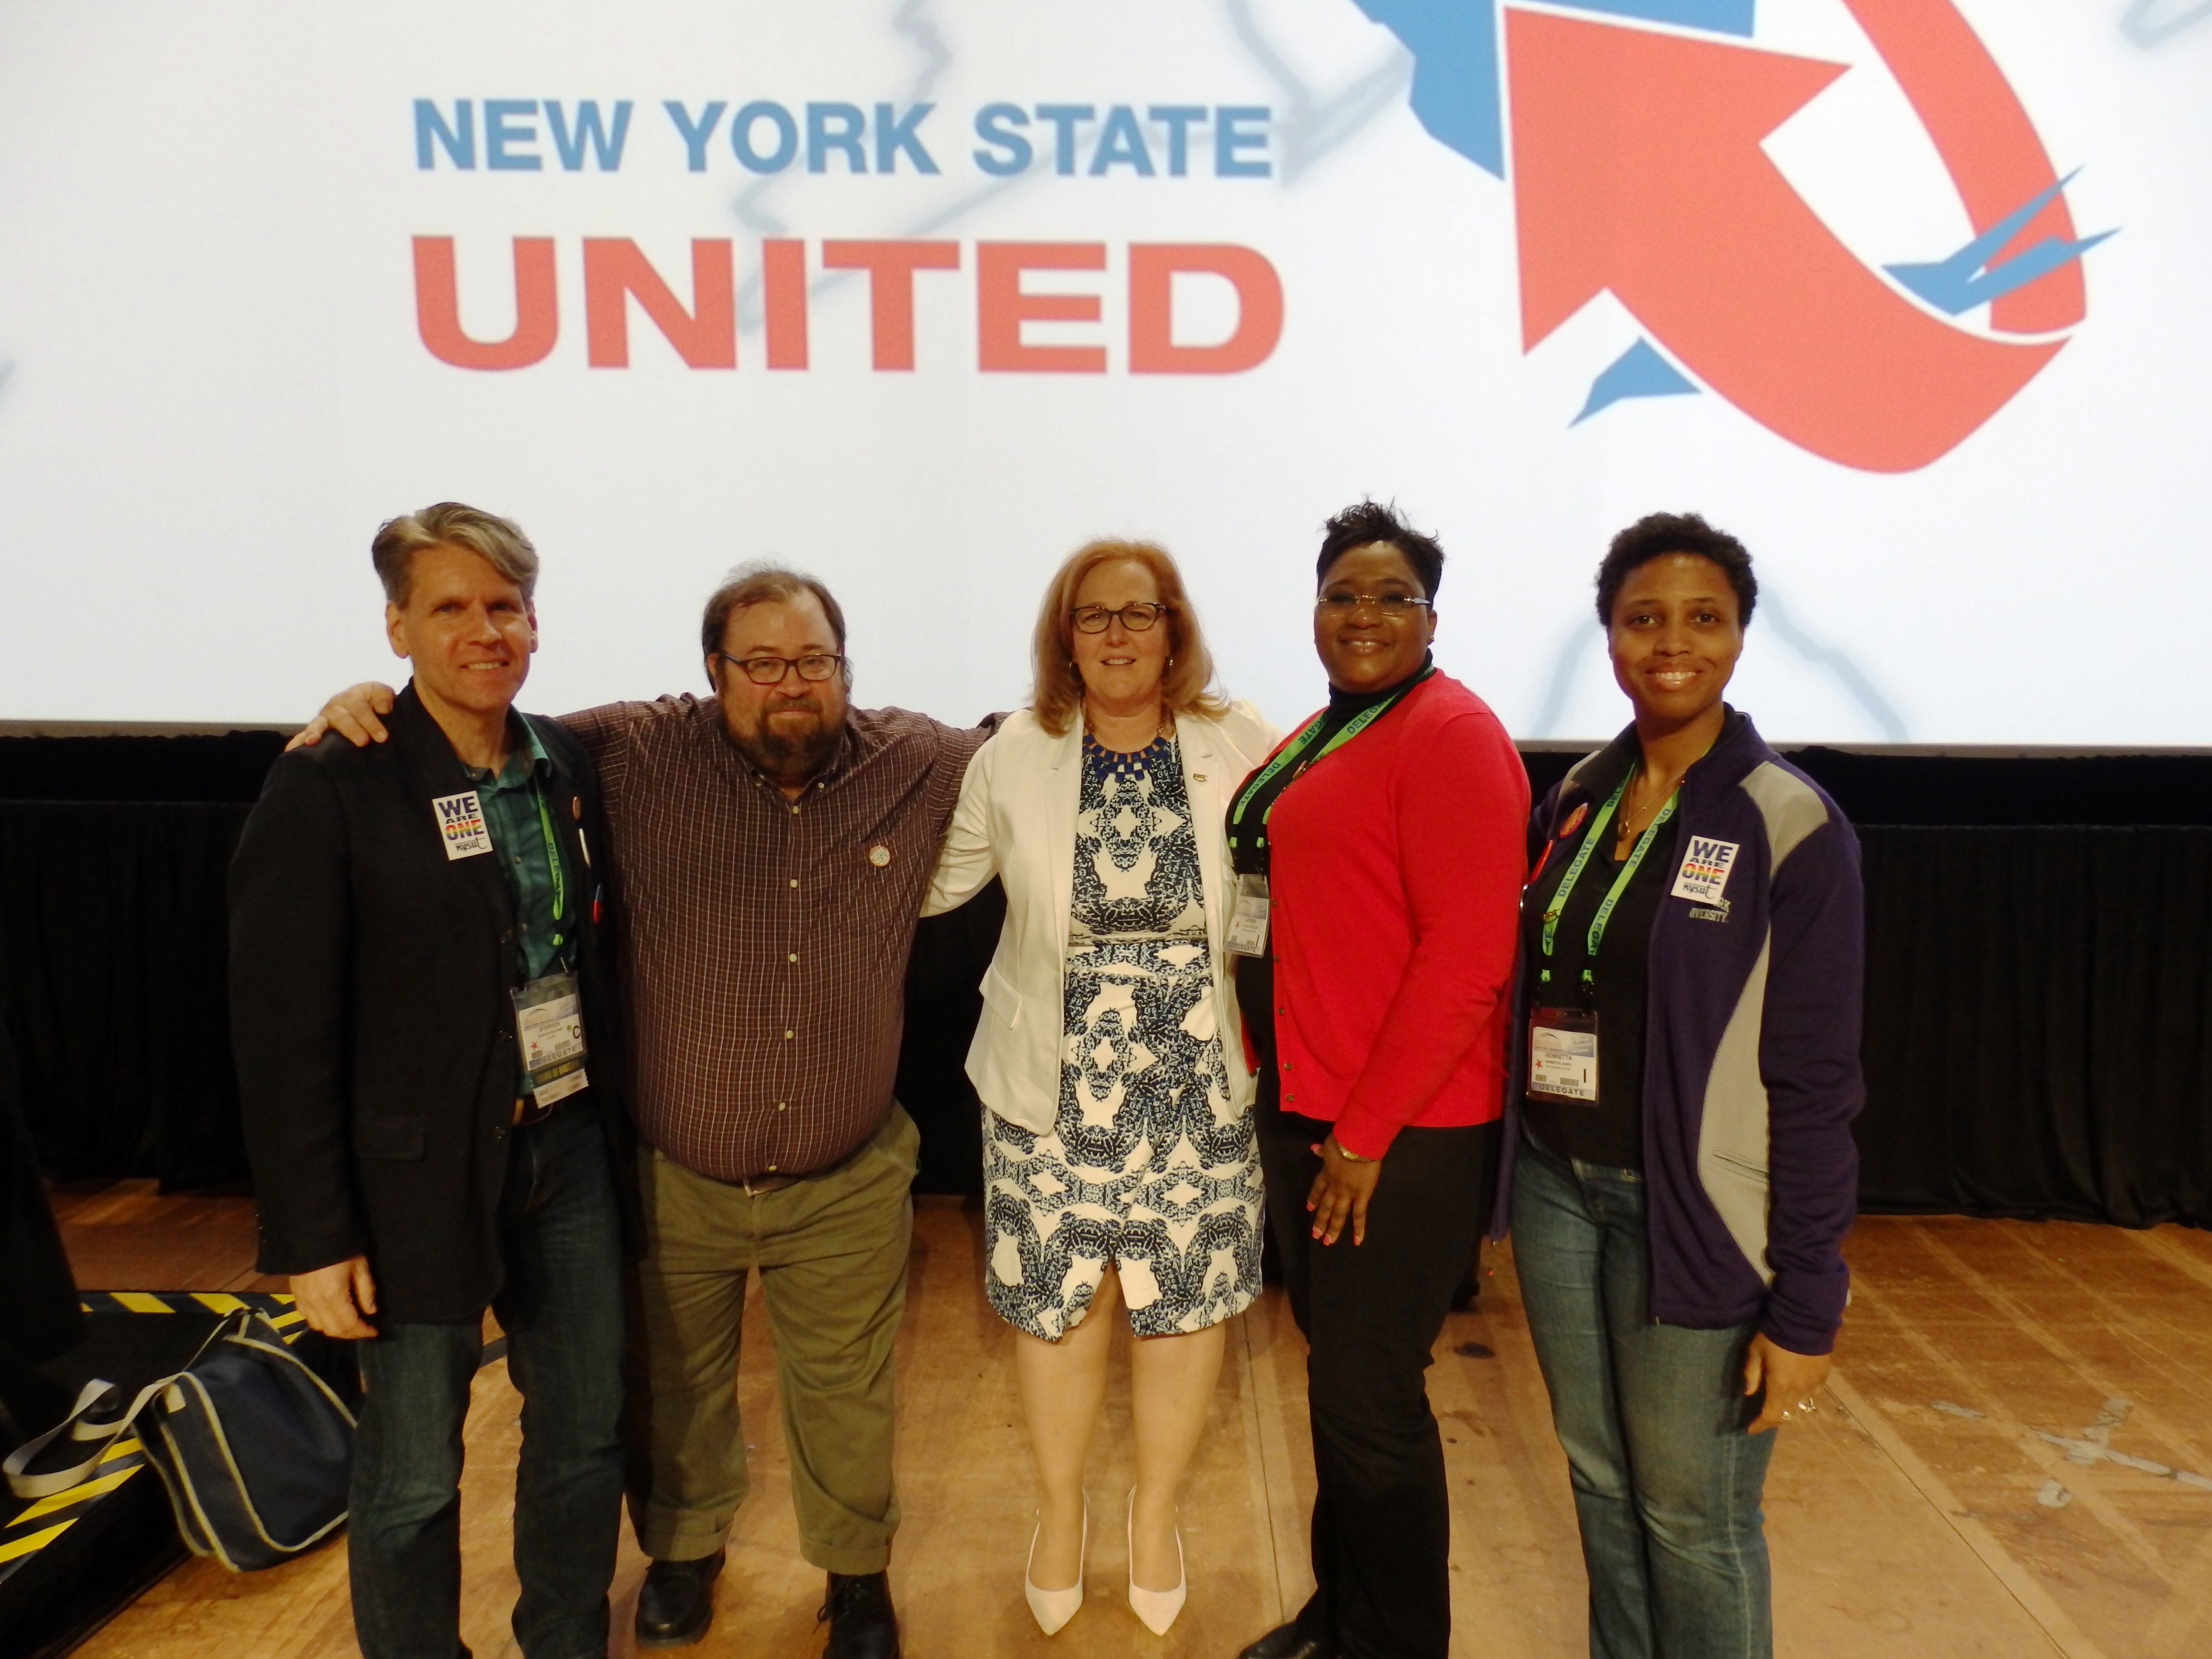 NYSUT 2016 RA-NYSUT President Karen MaGee (c) w/UCATS delegates (l to r) Stephen Rechner, Christopher Crowe, Latonia McMillan & Henrietta Jones